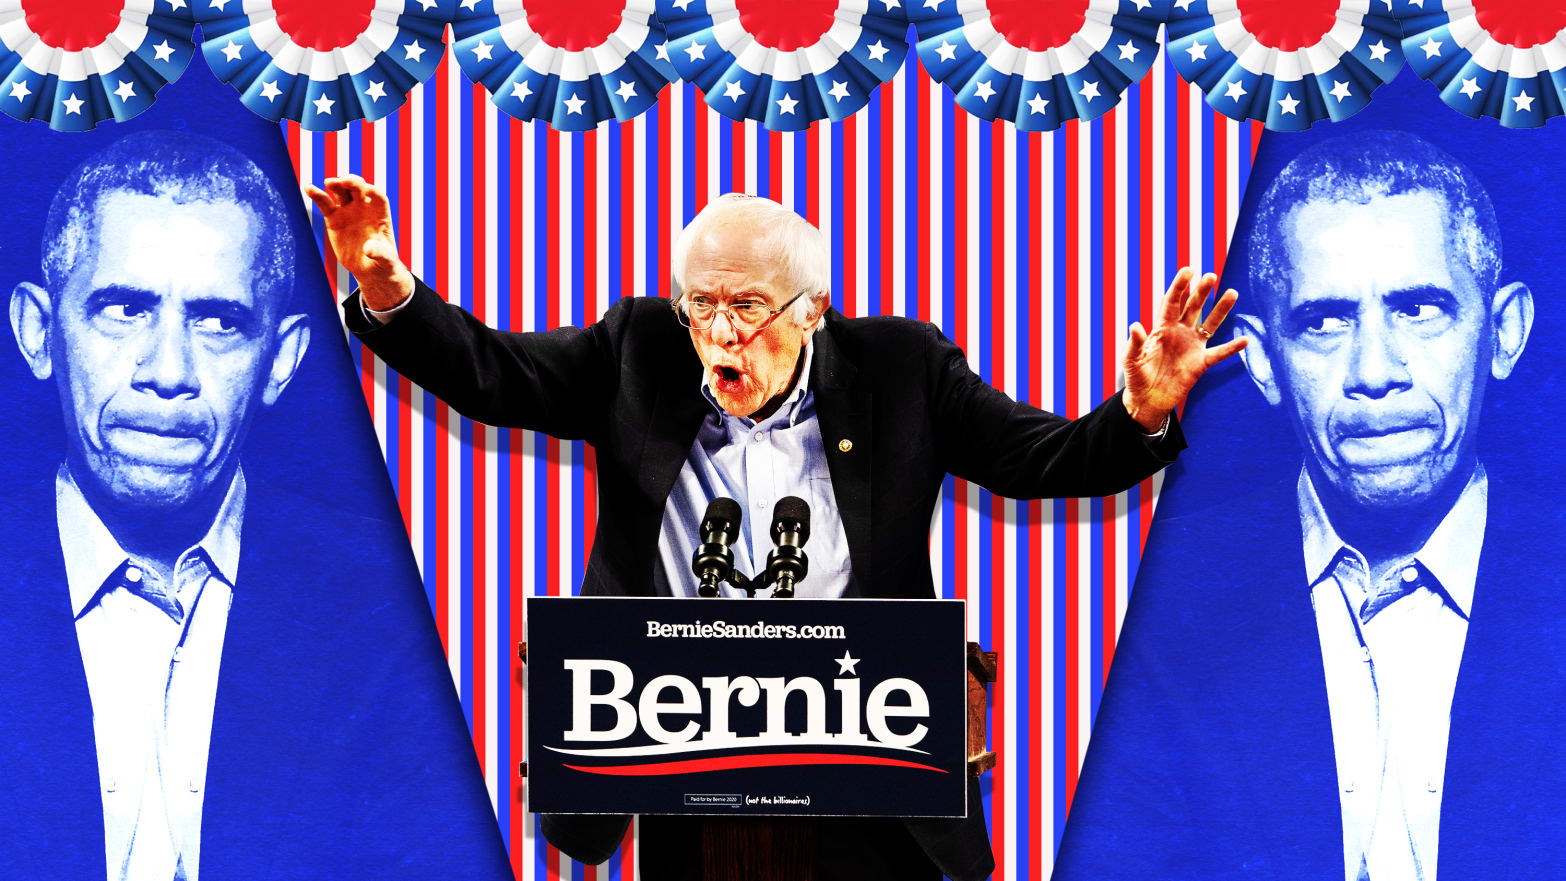 Bernie Sanders Supporters Cry Foul As DNC Seeks To Steal The Nomination From Him Once Again…